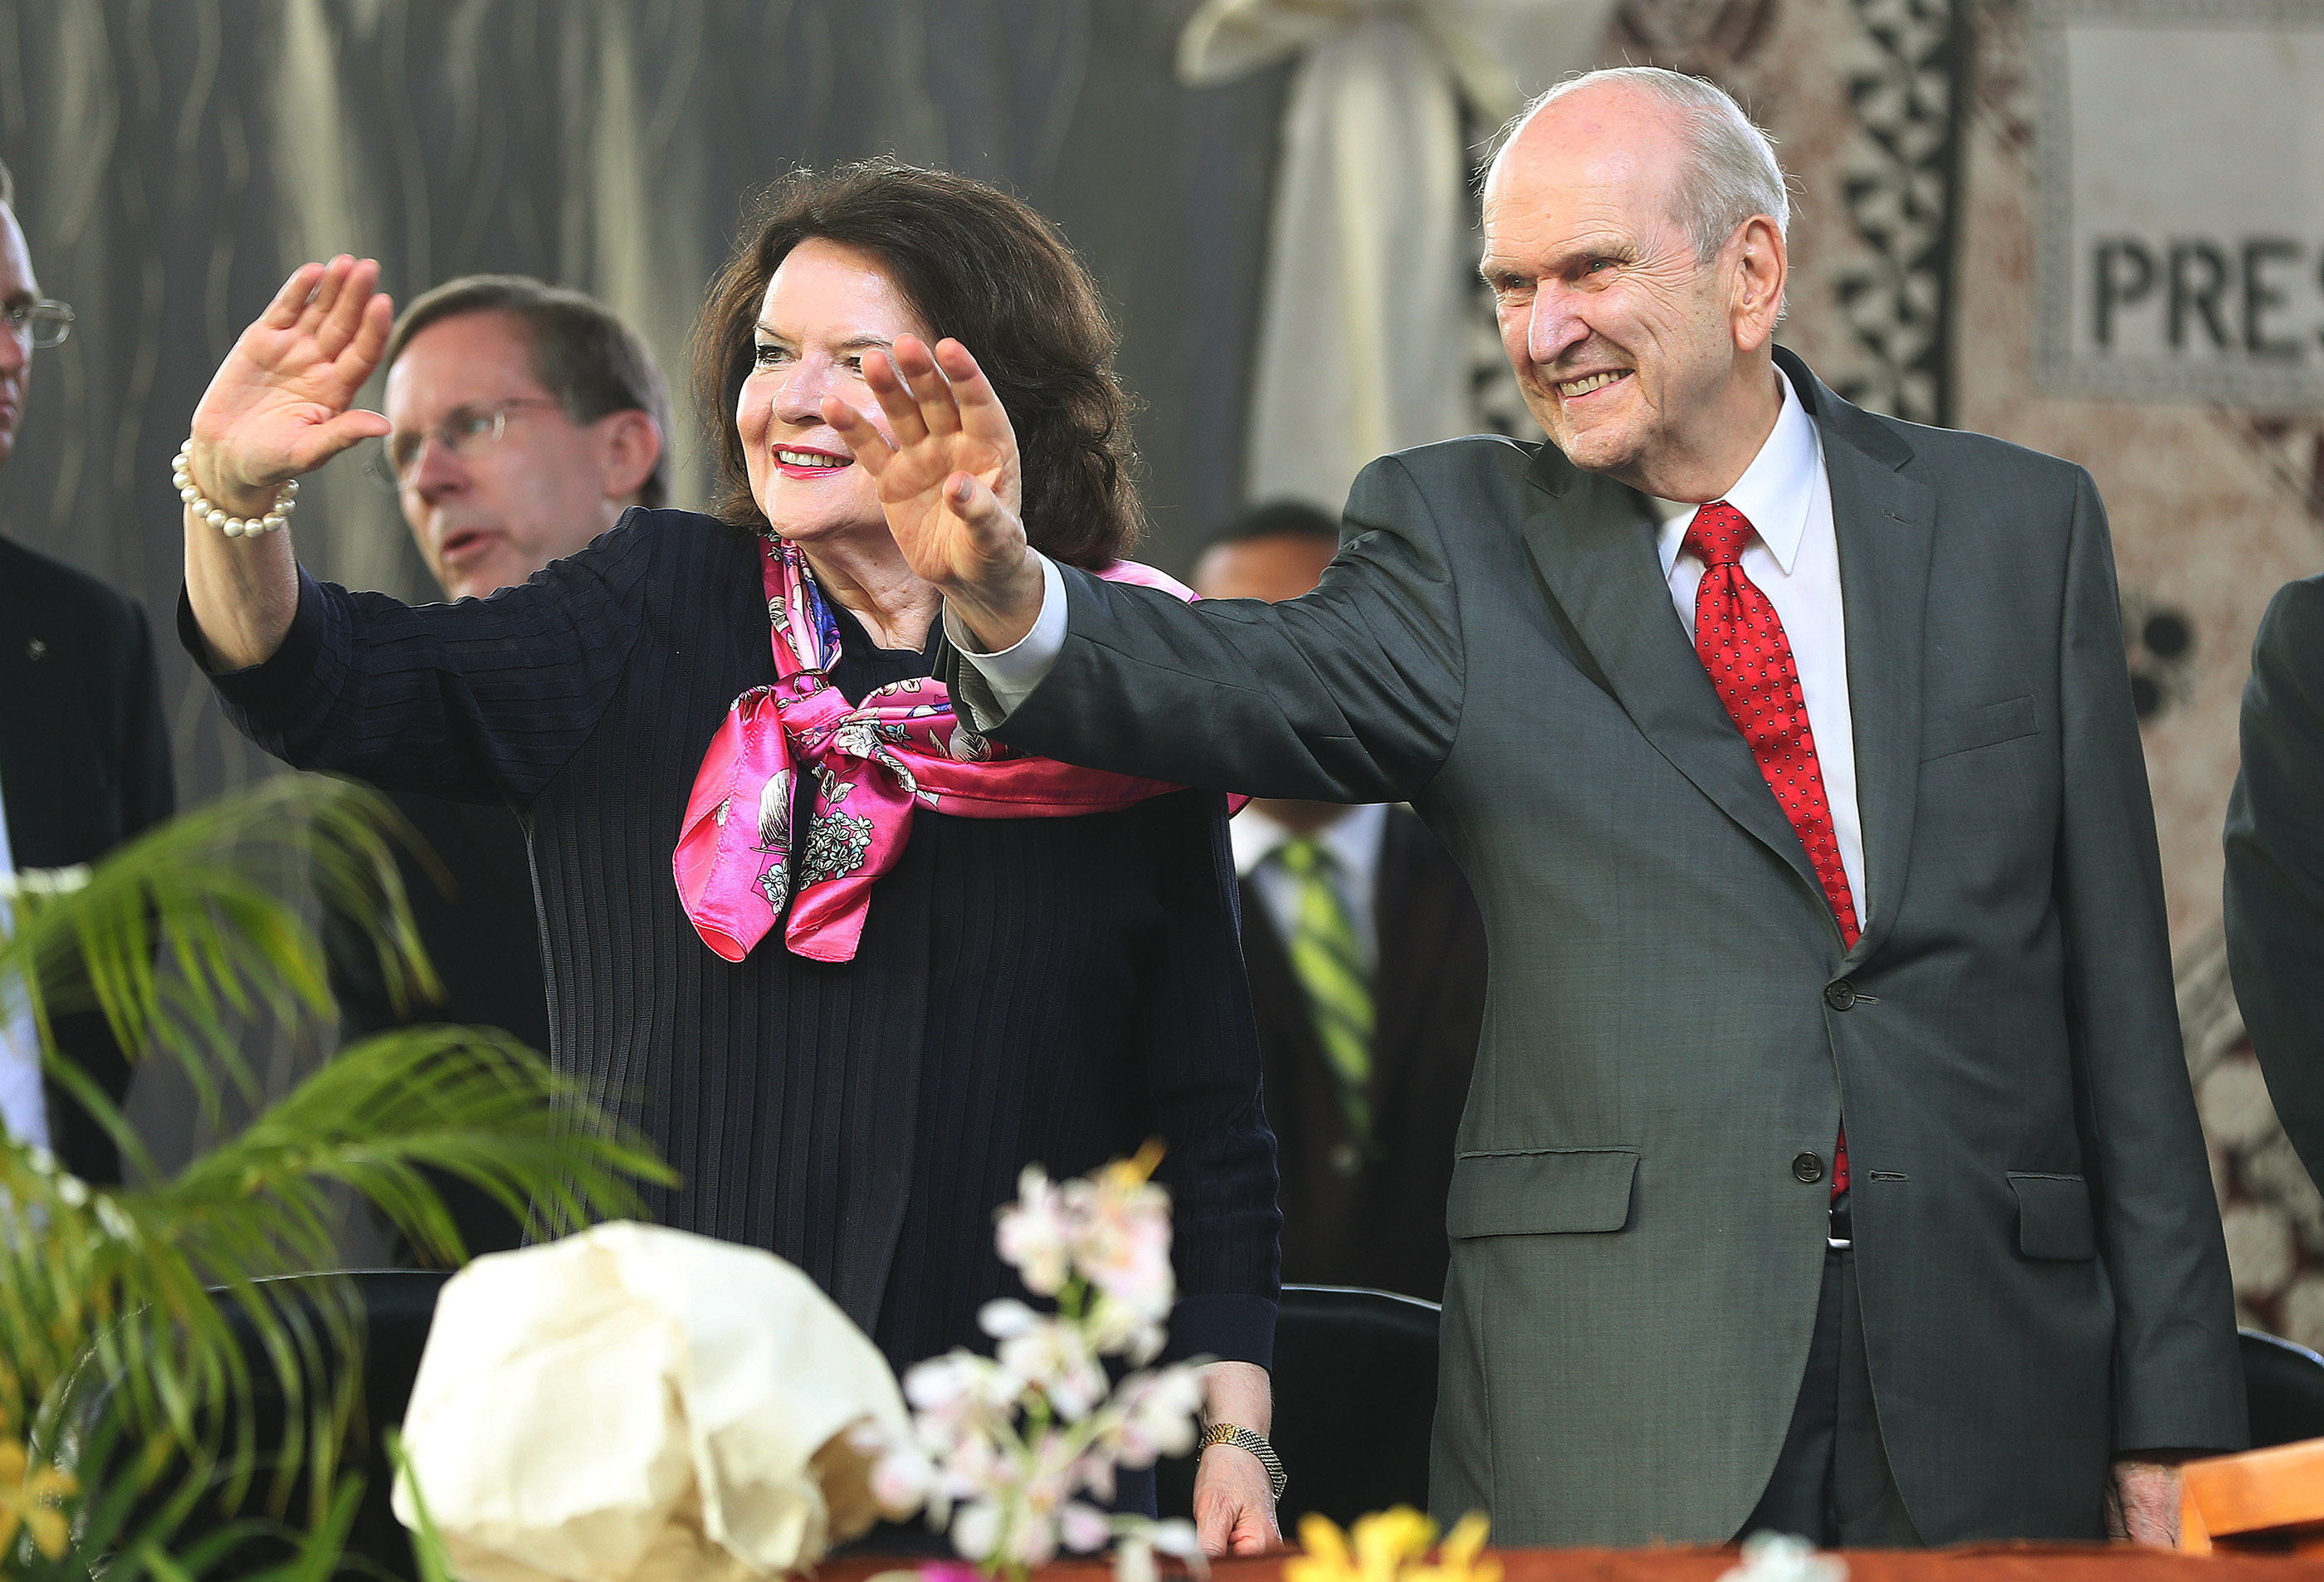 President Russell M. Nelson of The Church of Jesus Christ of Latter-day Saints and his wife, Sister Wendy Nelson, wave to attendees prior to a devotional at Ratu Cakobau Park stadium in Nausori, Fiji, on May 22, 2019.